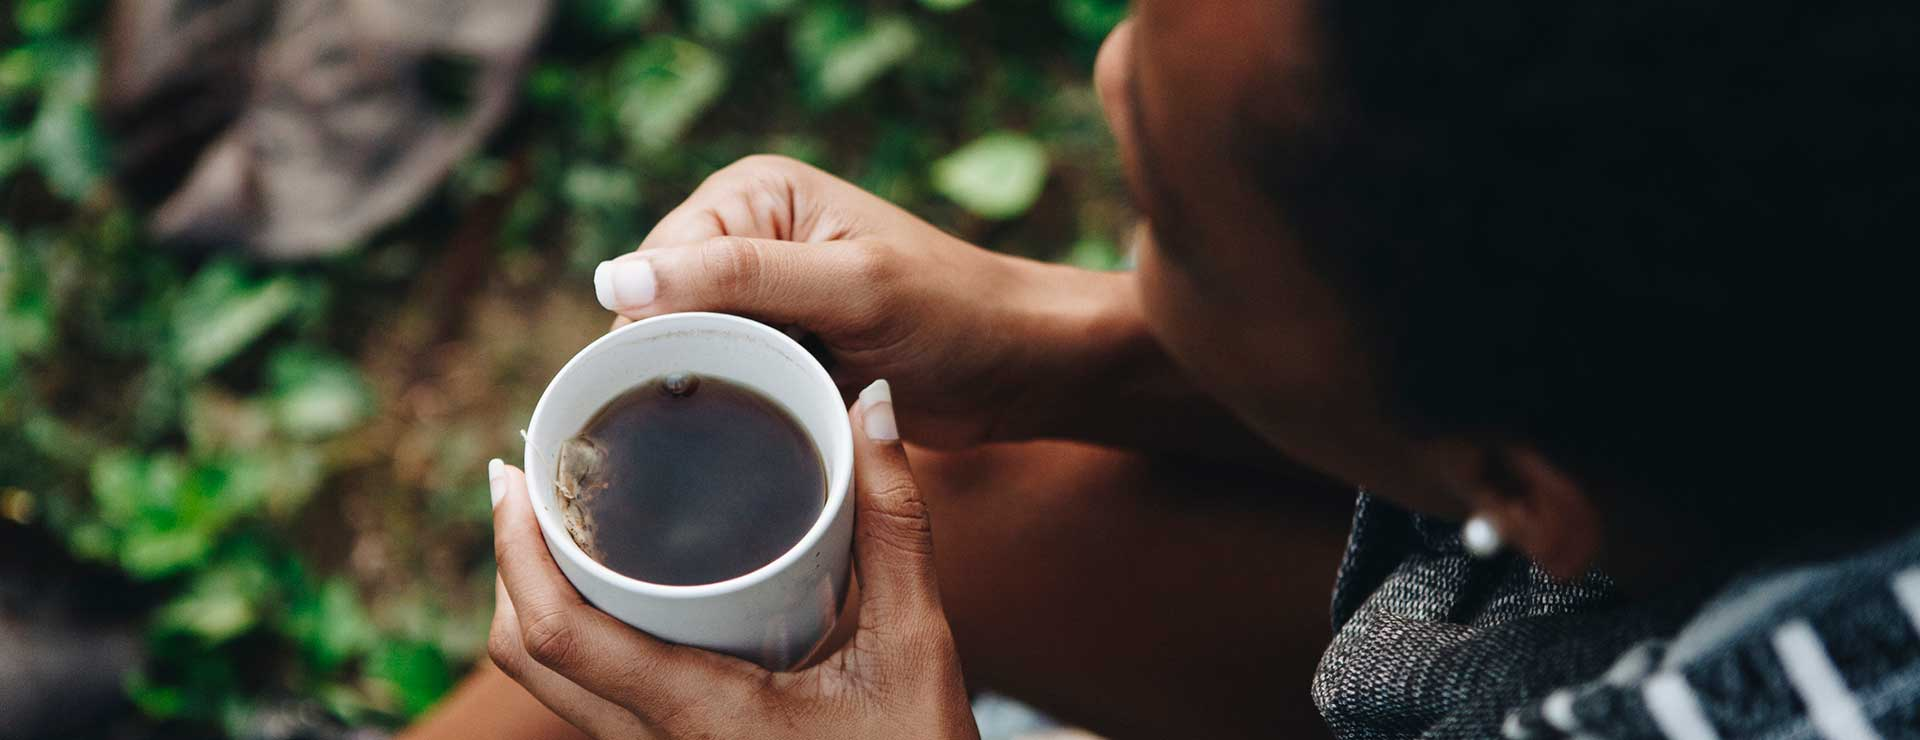 9 Reasons Why (the Right Amount of) Coffee Is Good for You | Johns